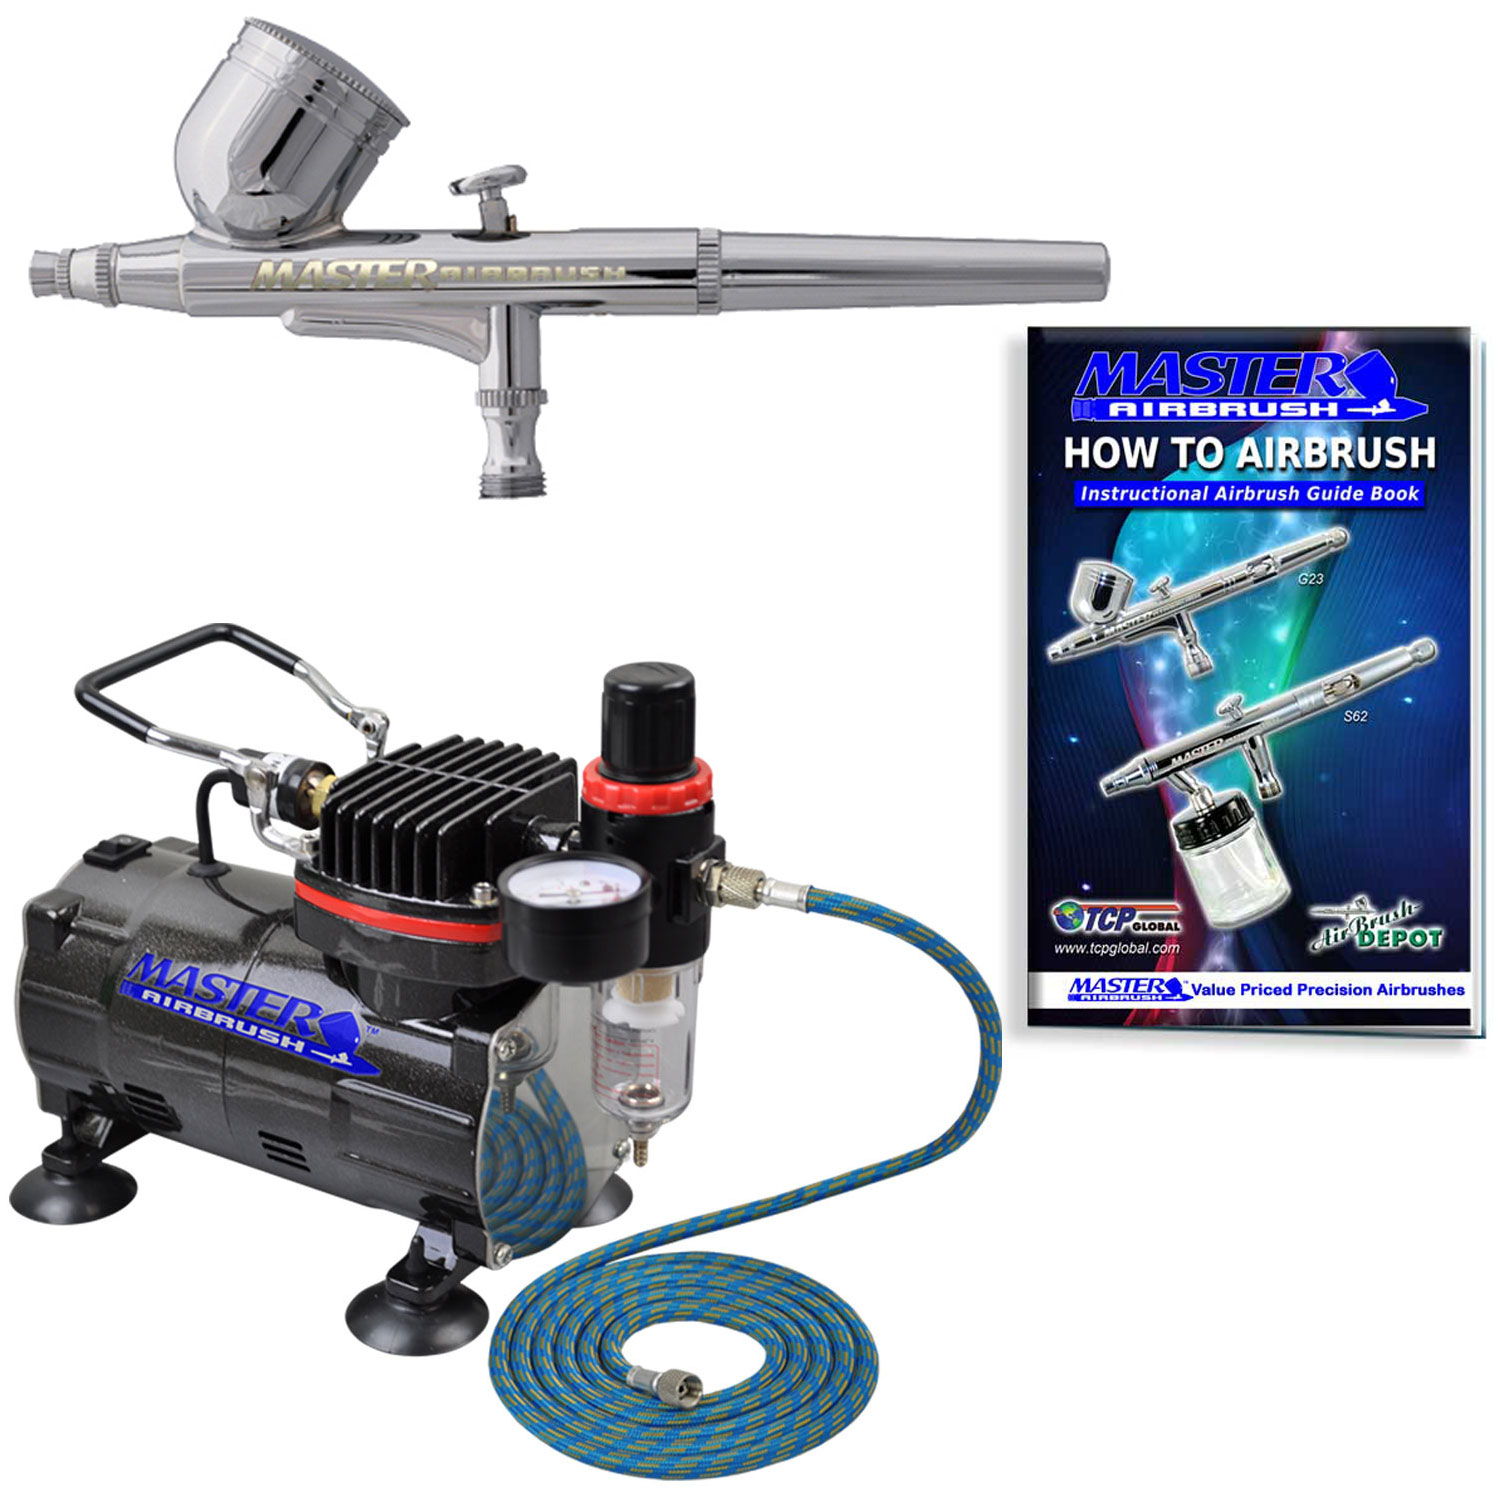 Professional Master Airbrush Multi-Purpose Gravity Feed Airbrushing System Kit - Gravity Feed Dual-Action Airbrush